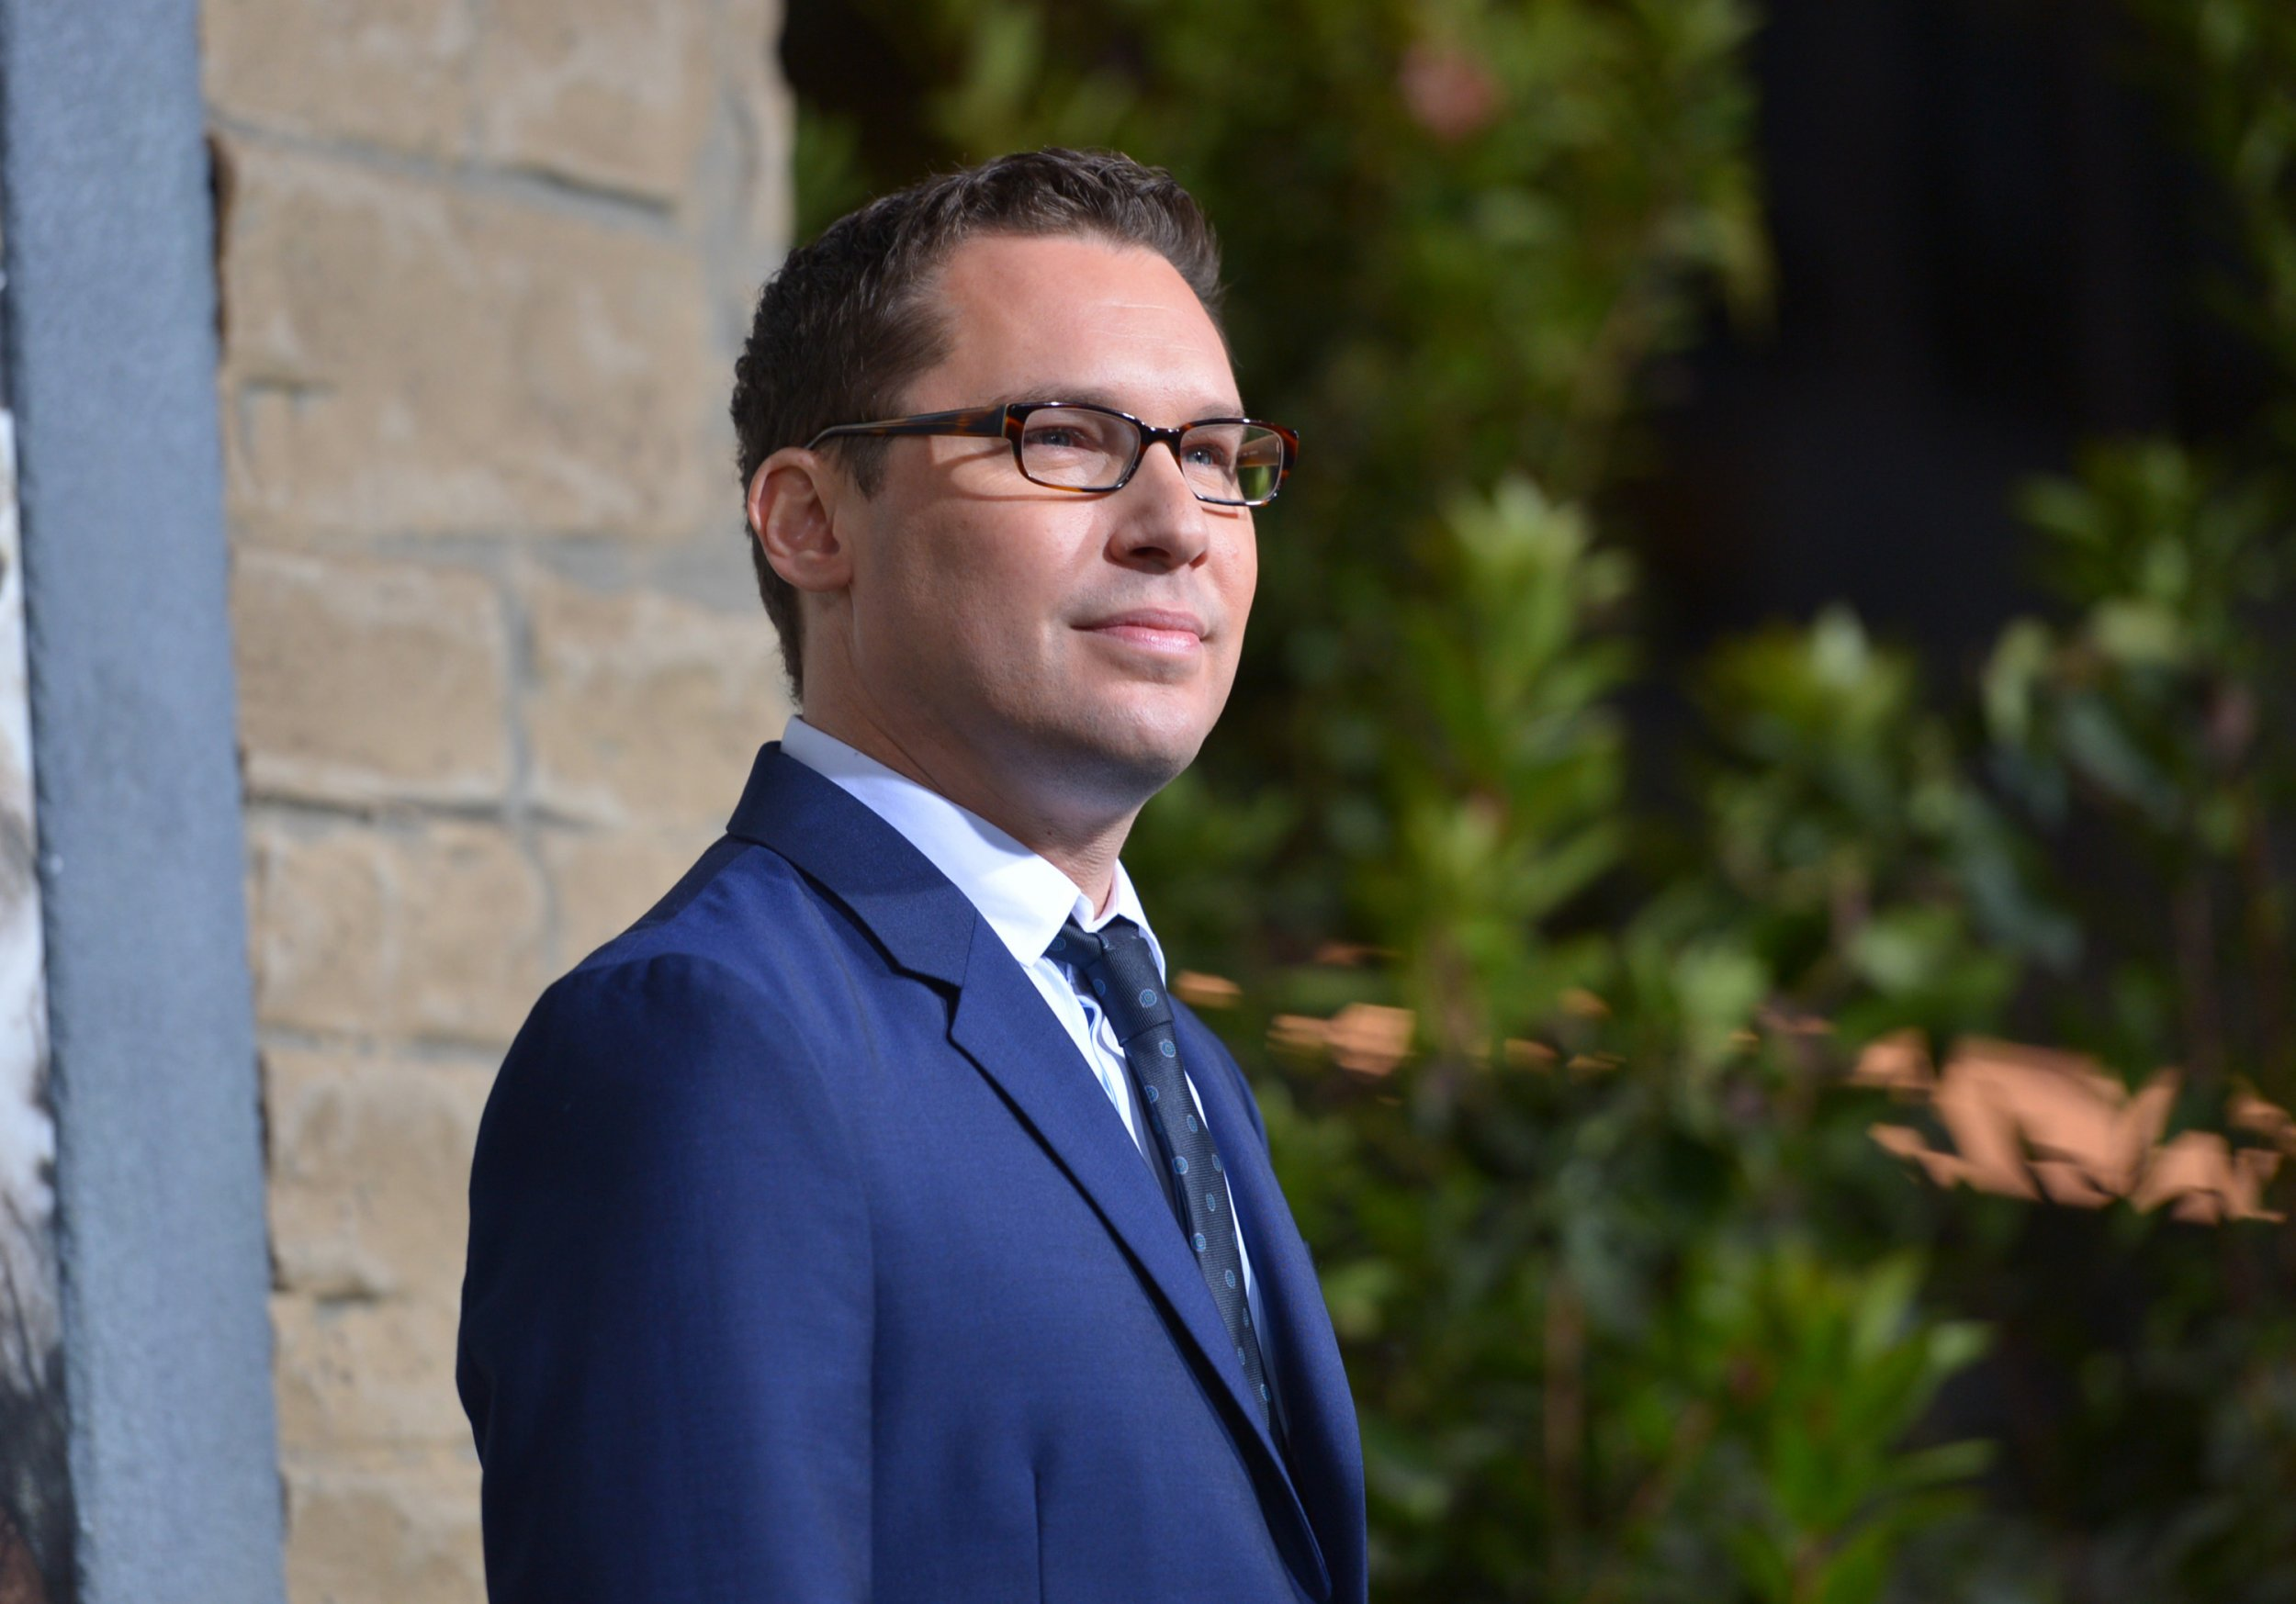 Bryan Singer hosted drug-fueled orgies, ex claims